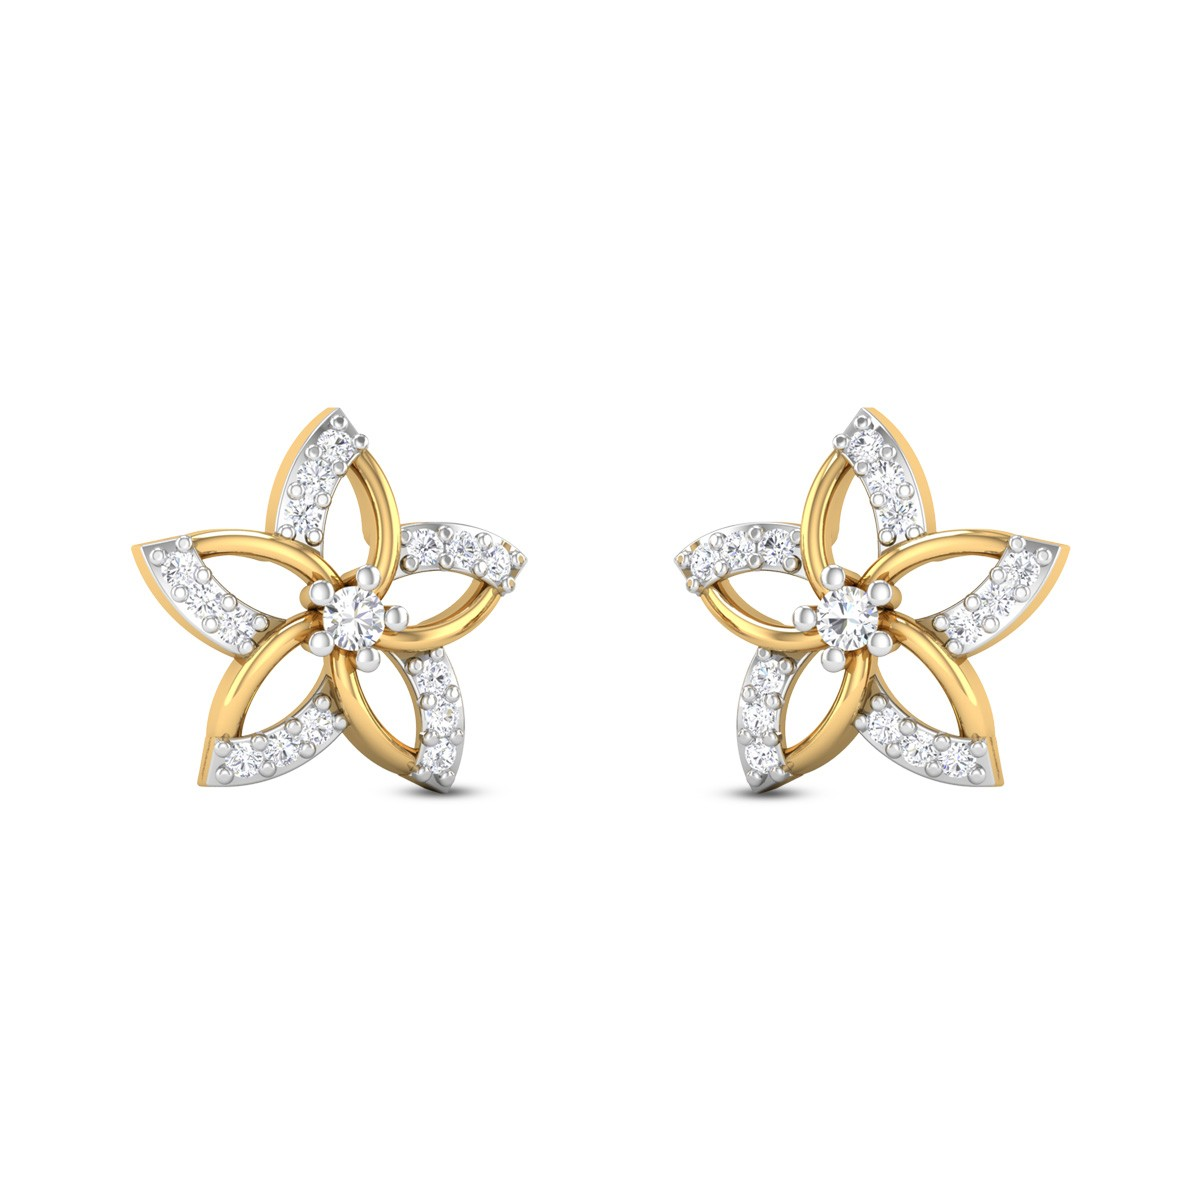 Vanera Diamond Earrings